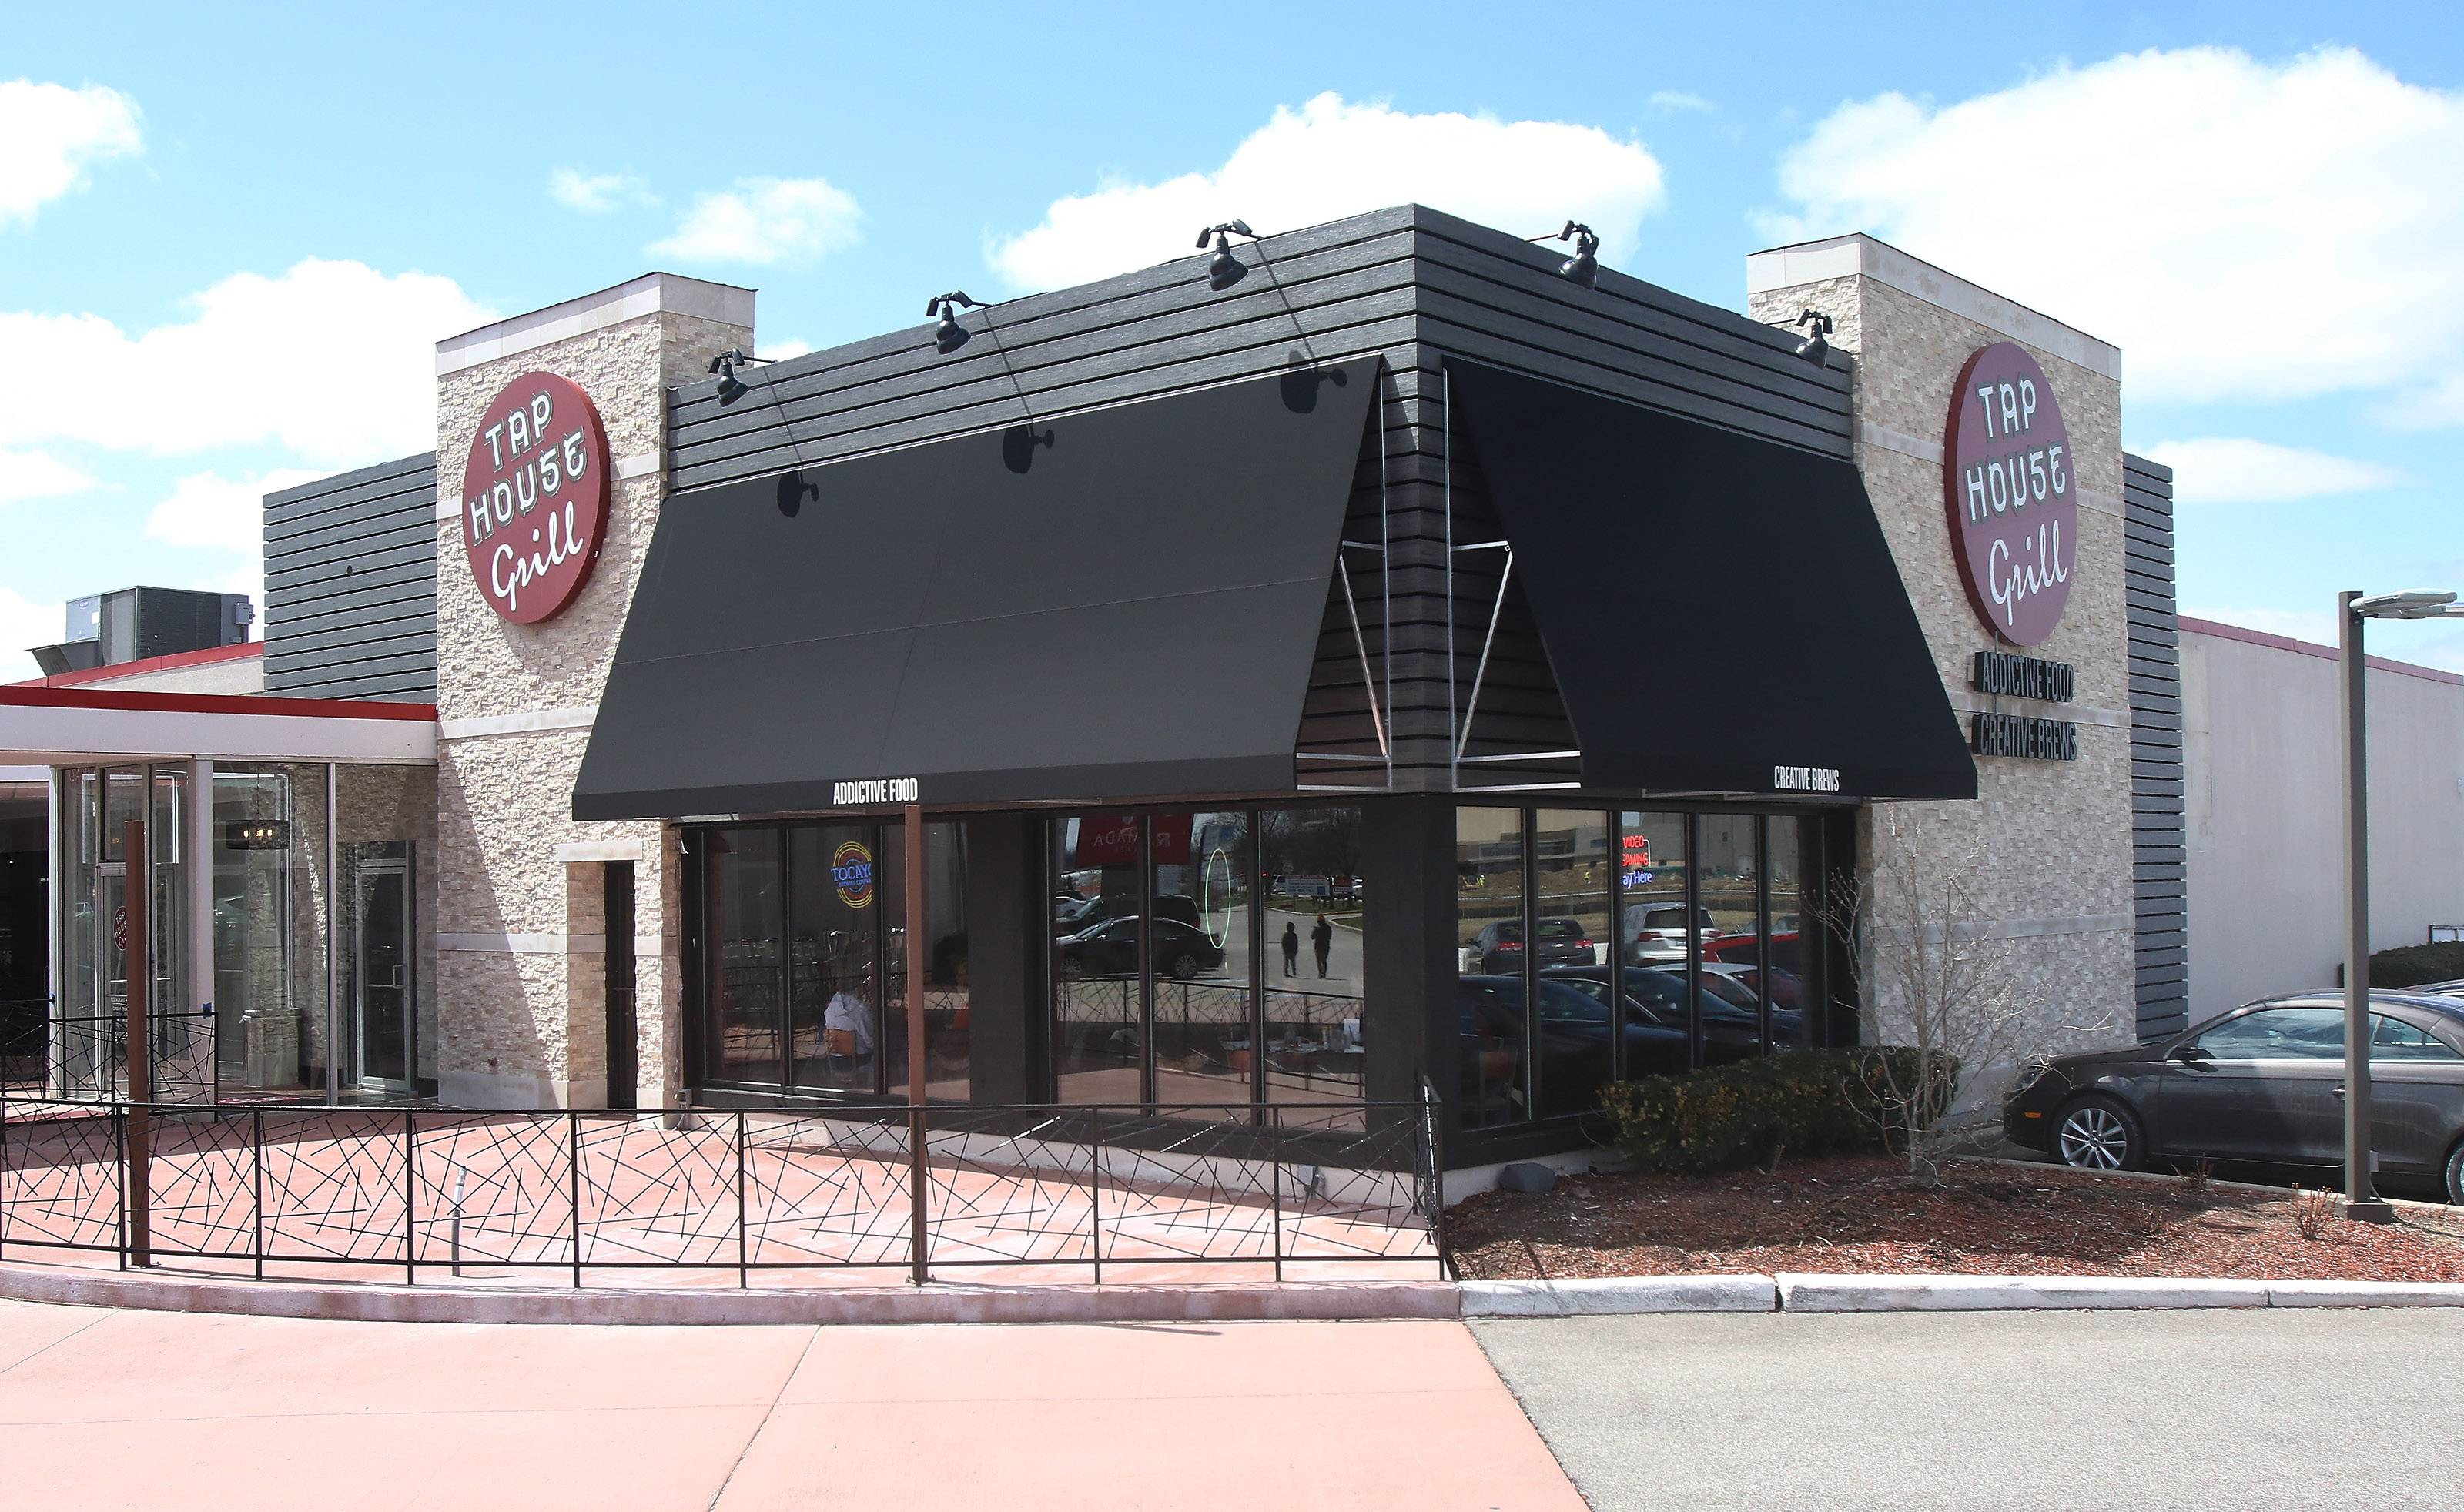 Tap House Grill Opened Recently In Wheeling.